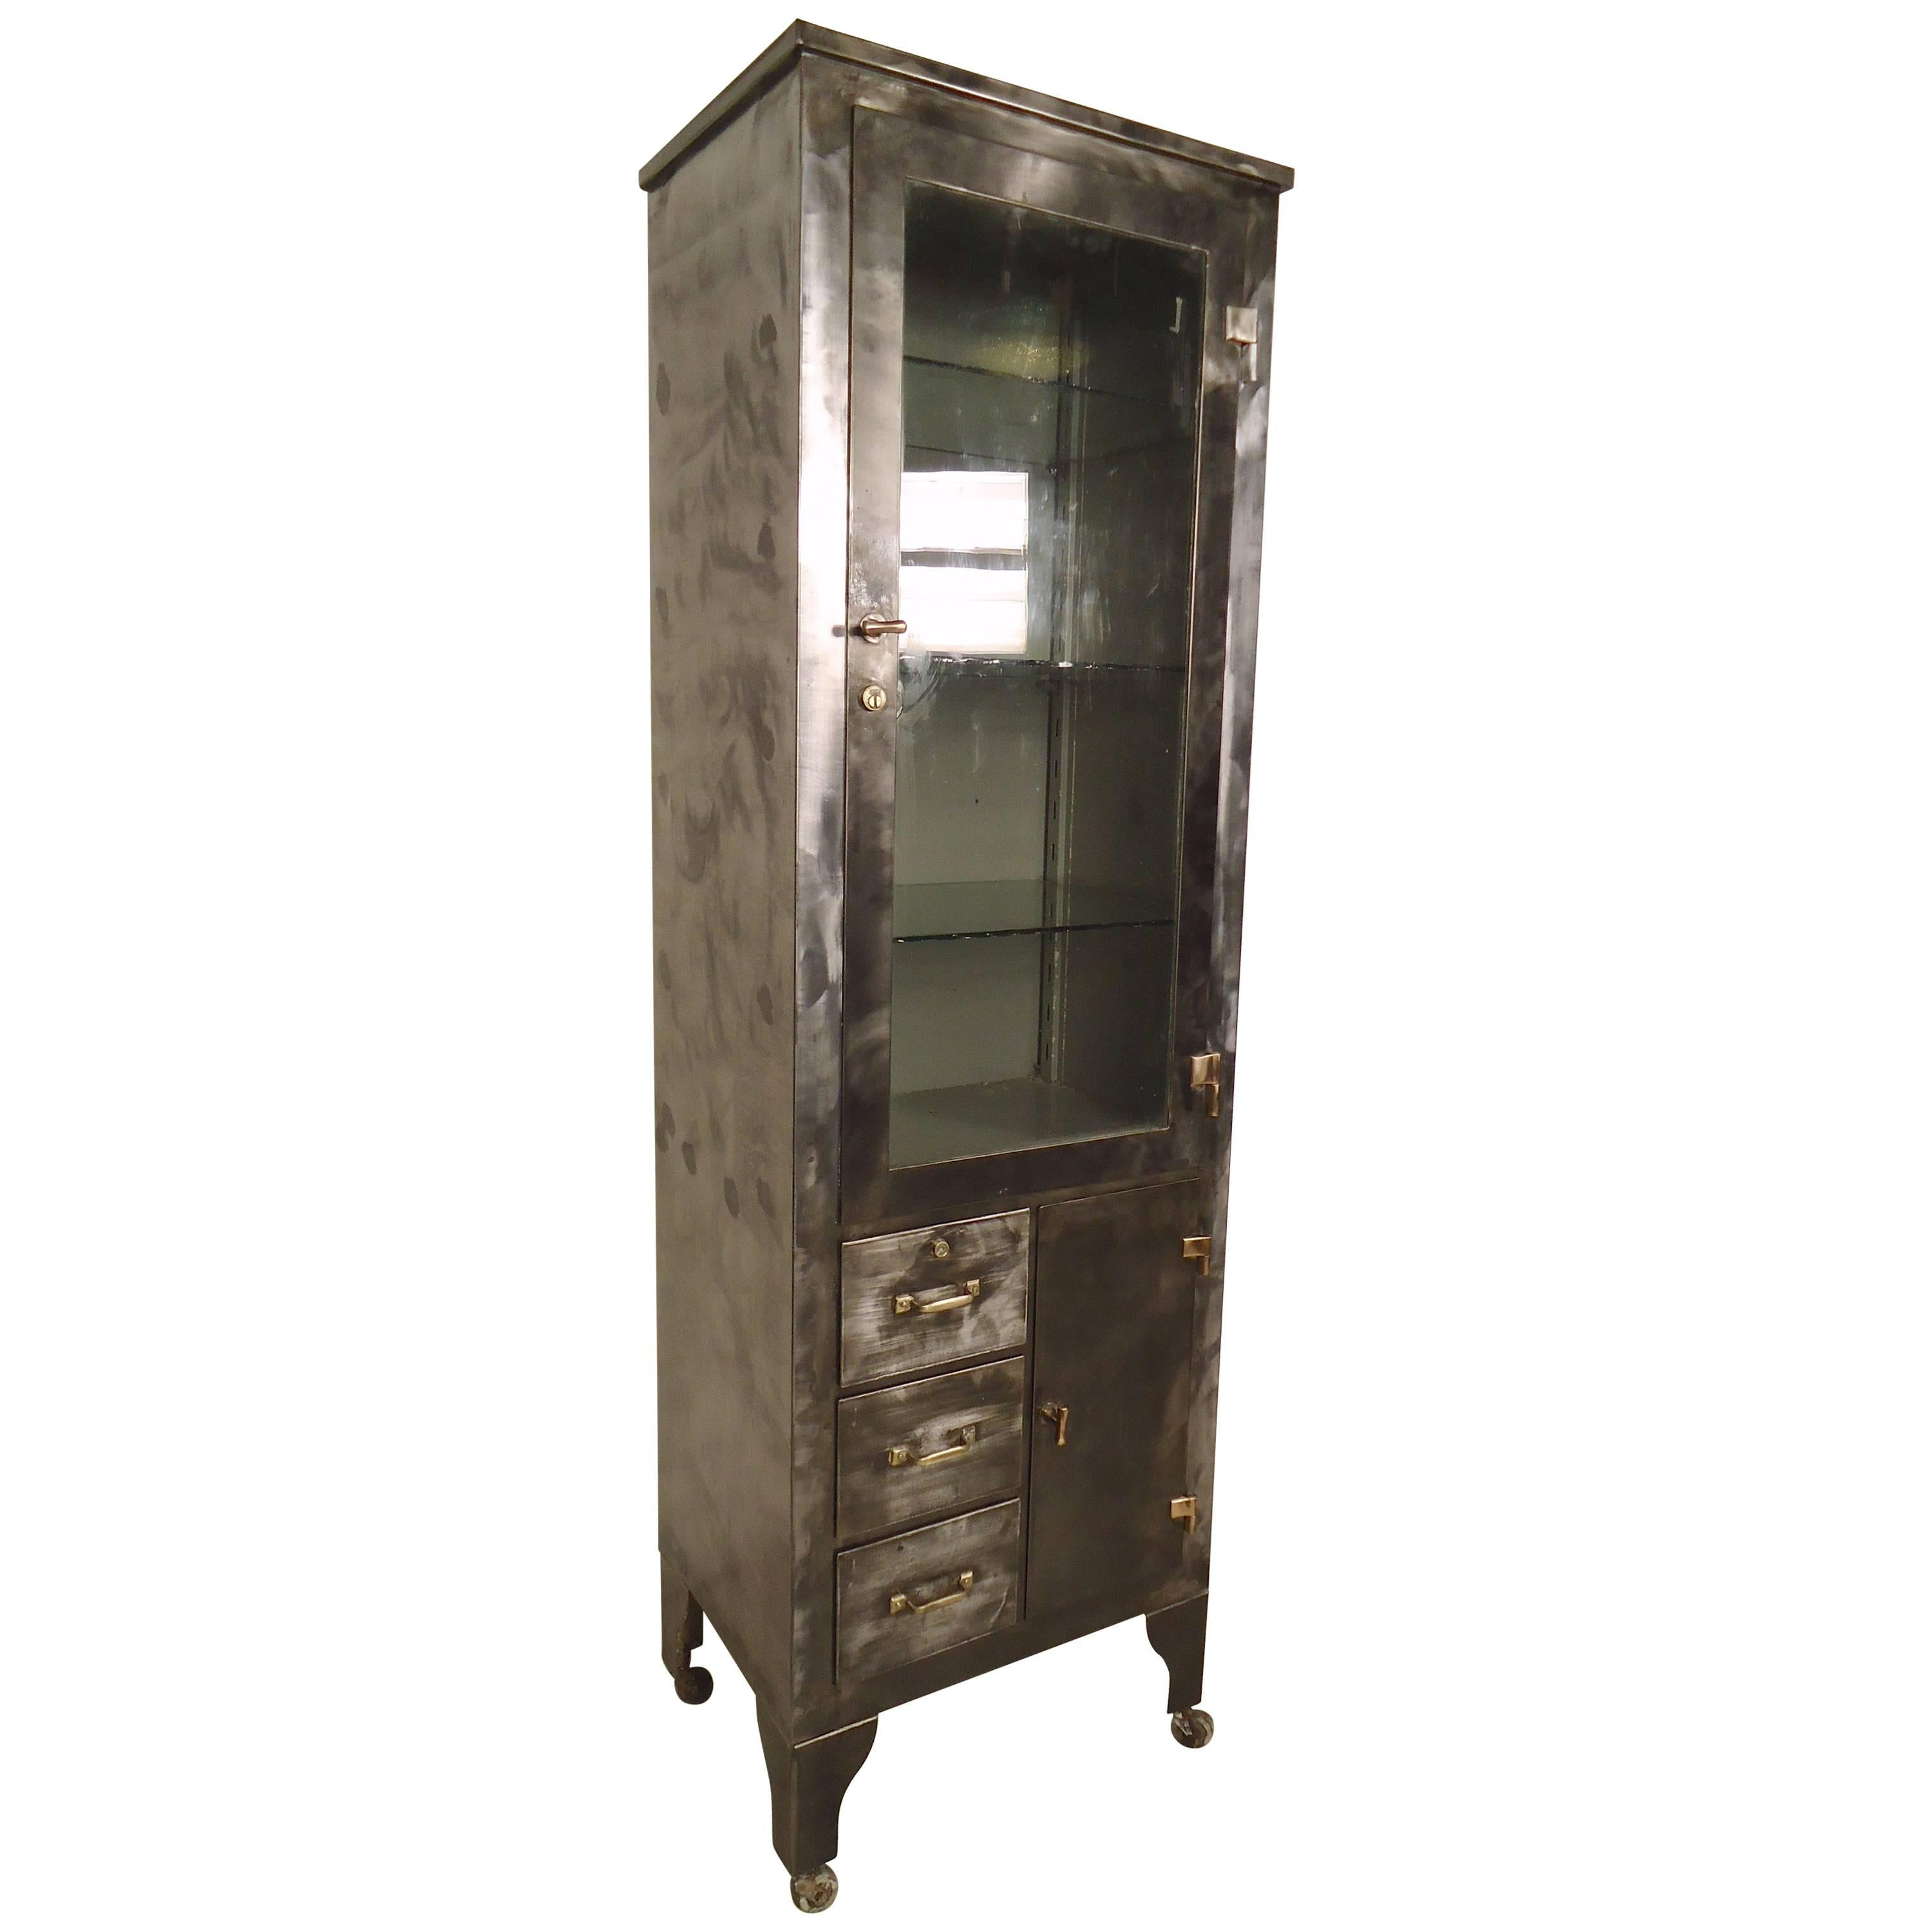 Antique Industrial Oak Apothecary Medicine Cabinet at 1stdibs